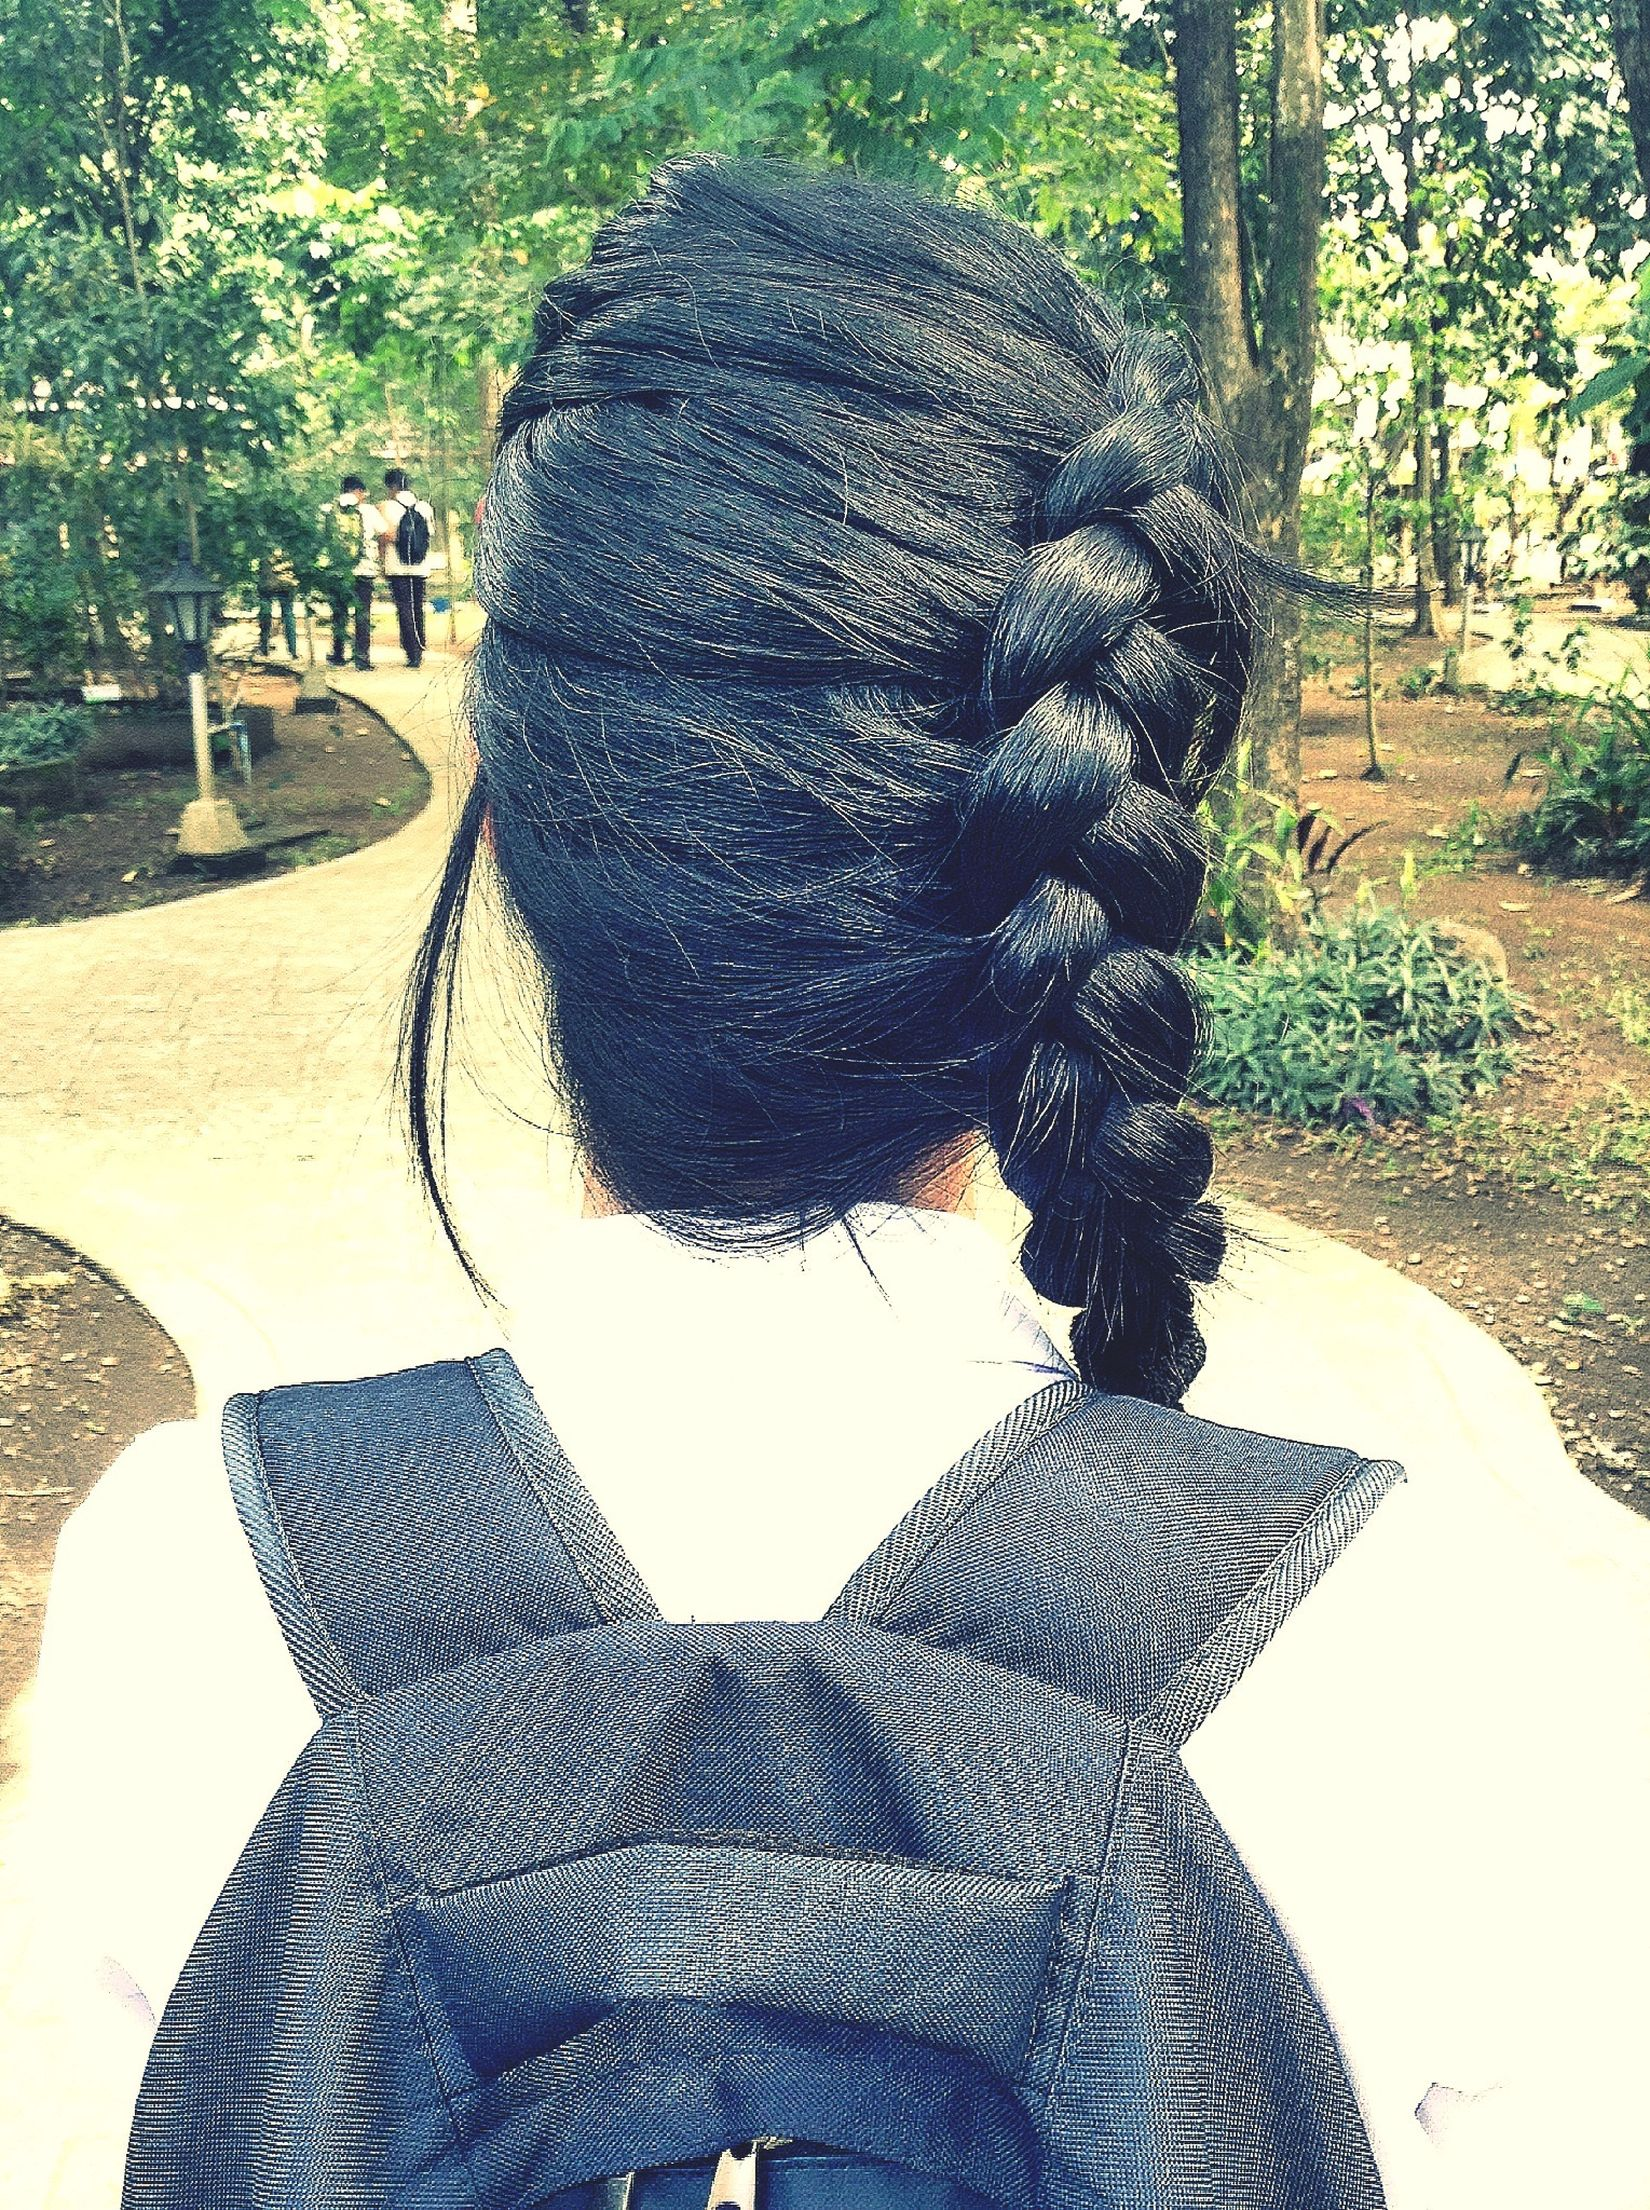 My friend's braided hair. Hanging Out Enjoying Life Check This Out Friends